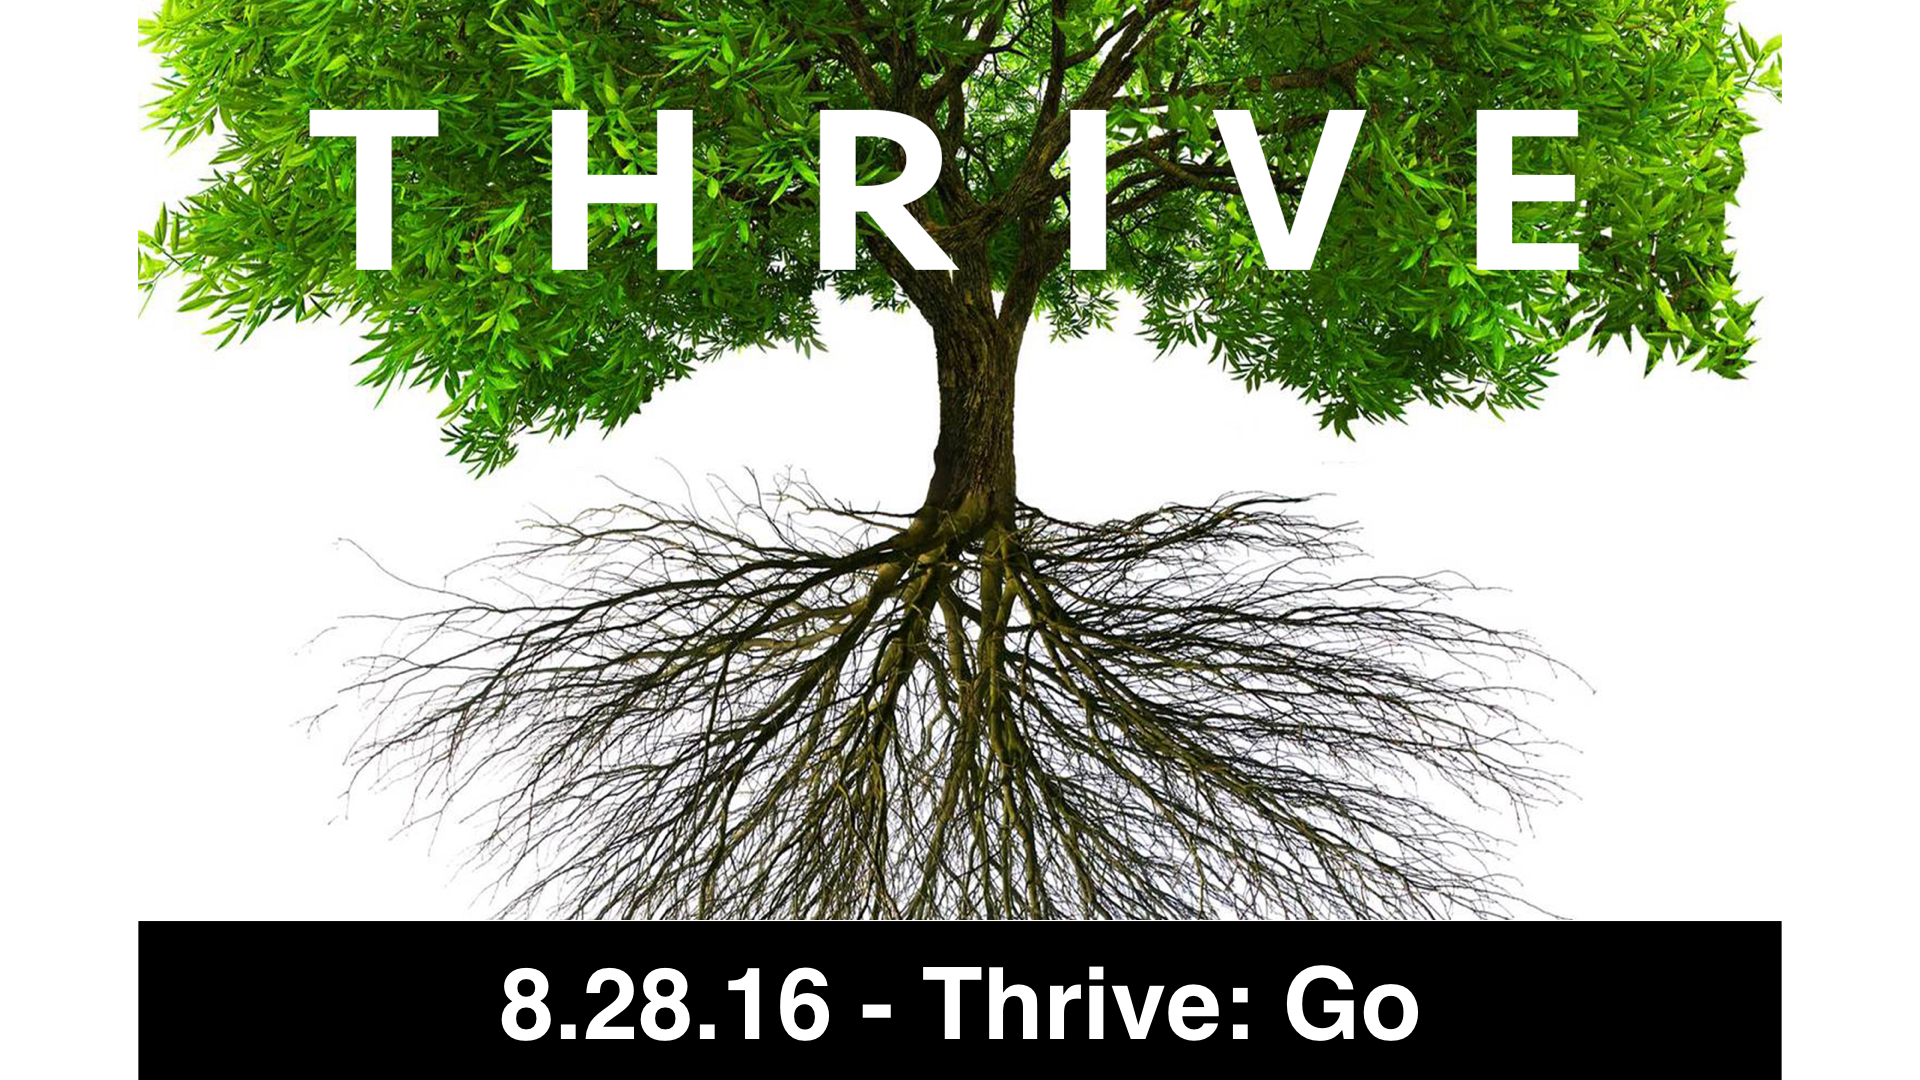 08-28-16 - Thrive: Go